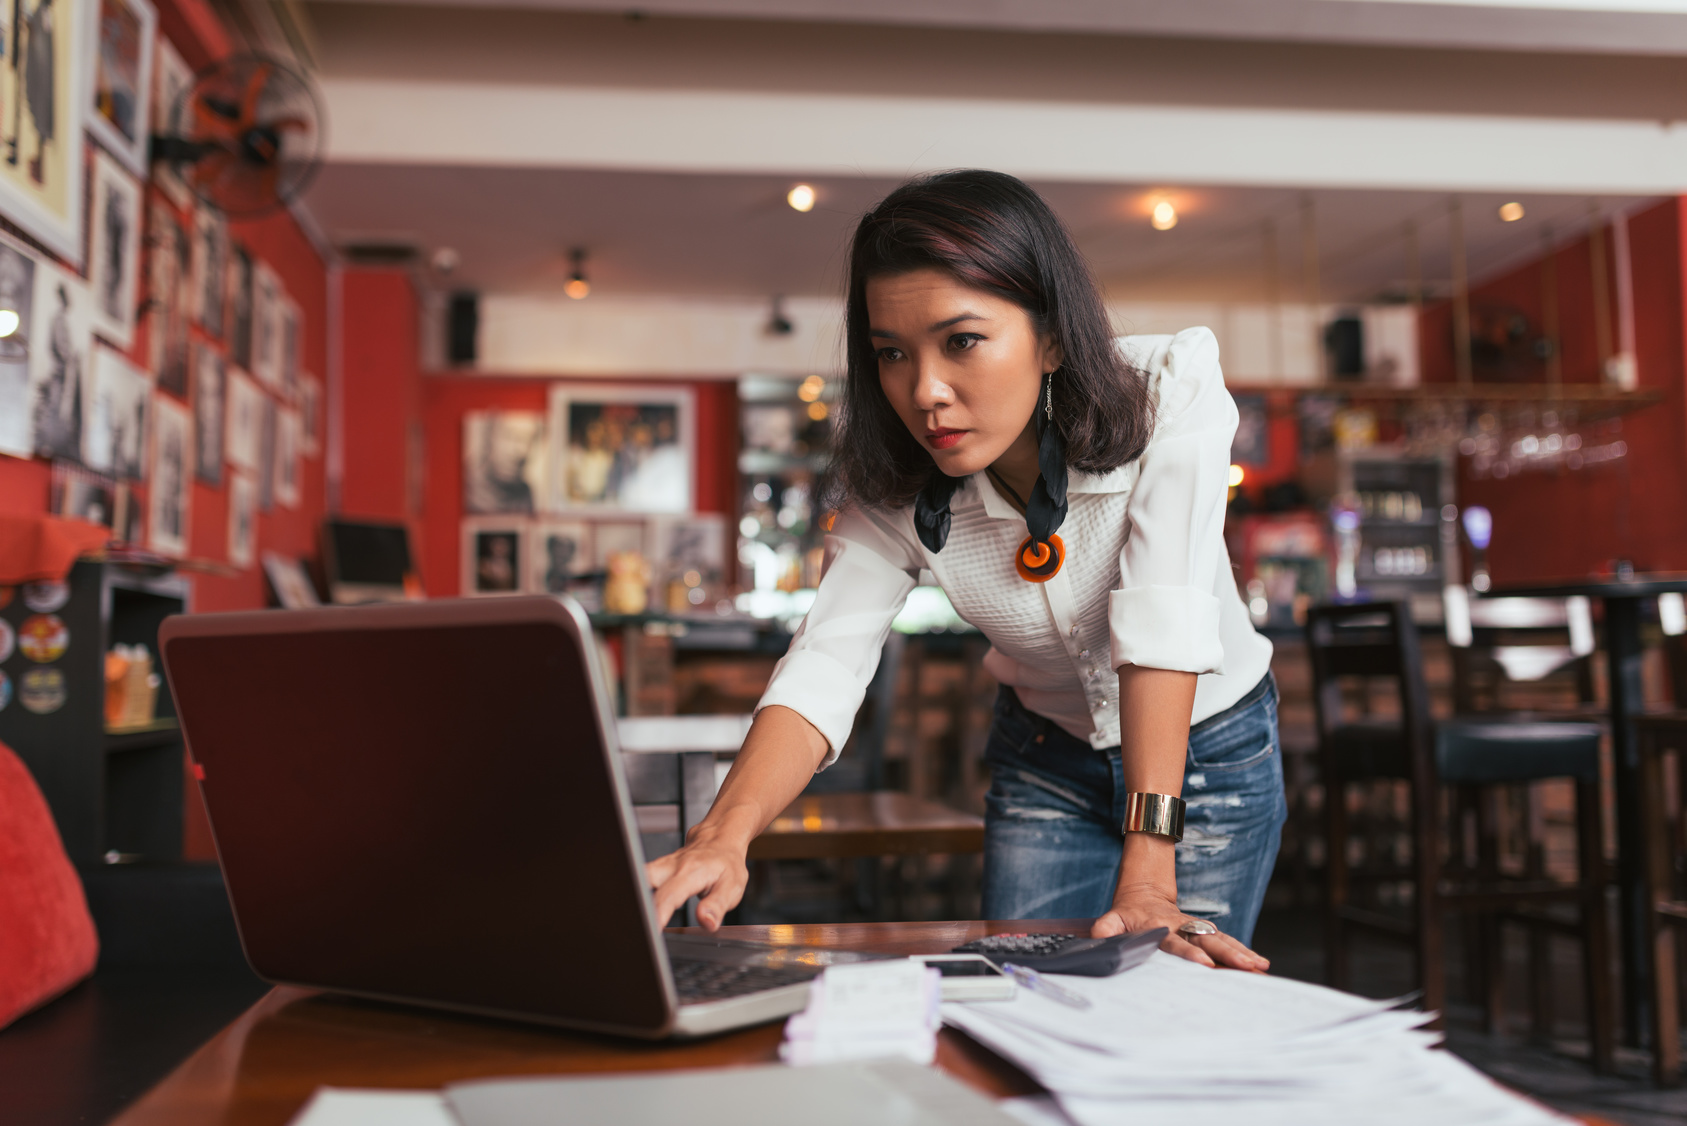 Are You Prepared for Your Small Business Taxes? Tips to Help You Save